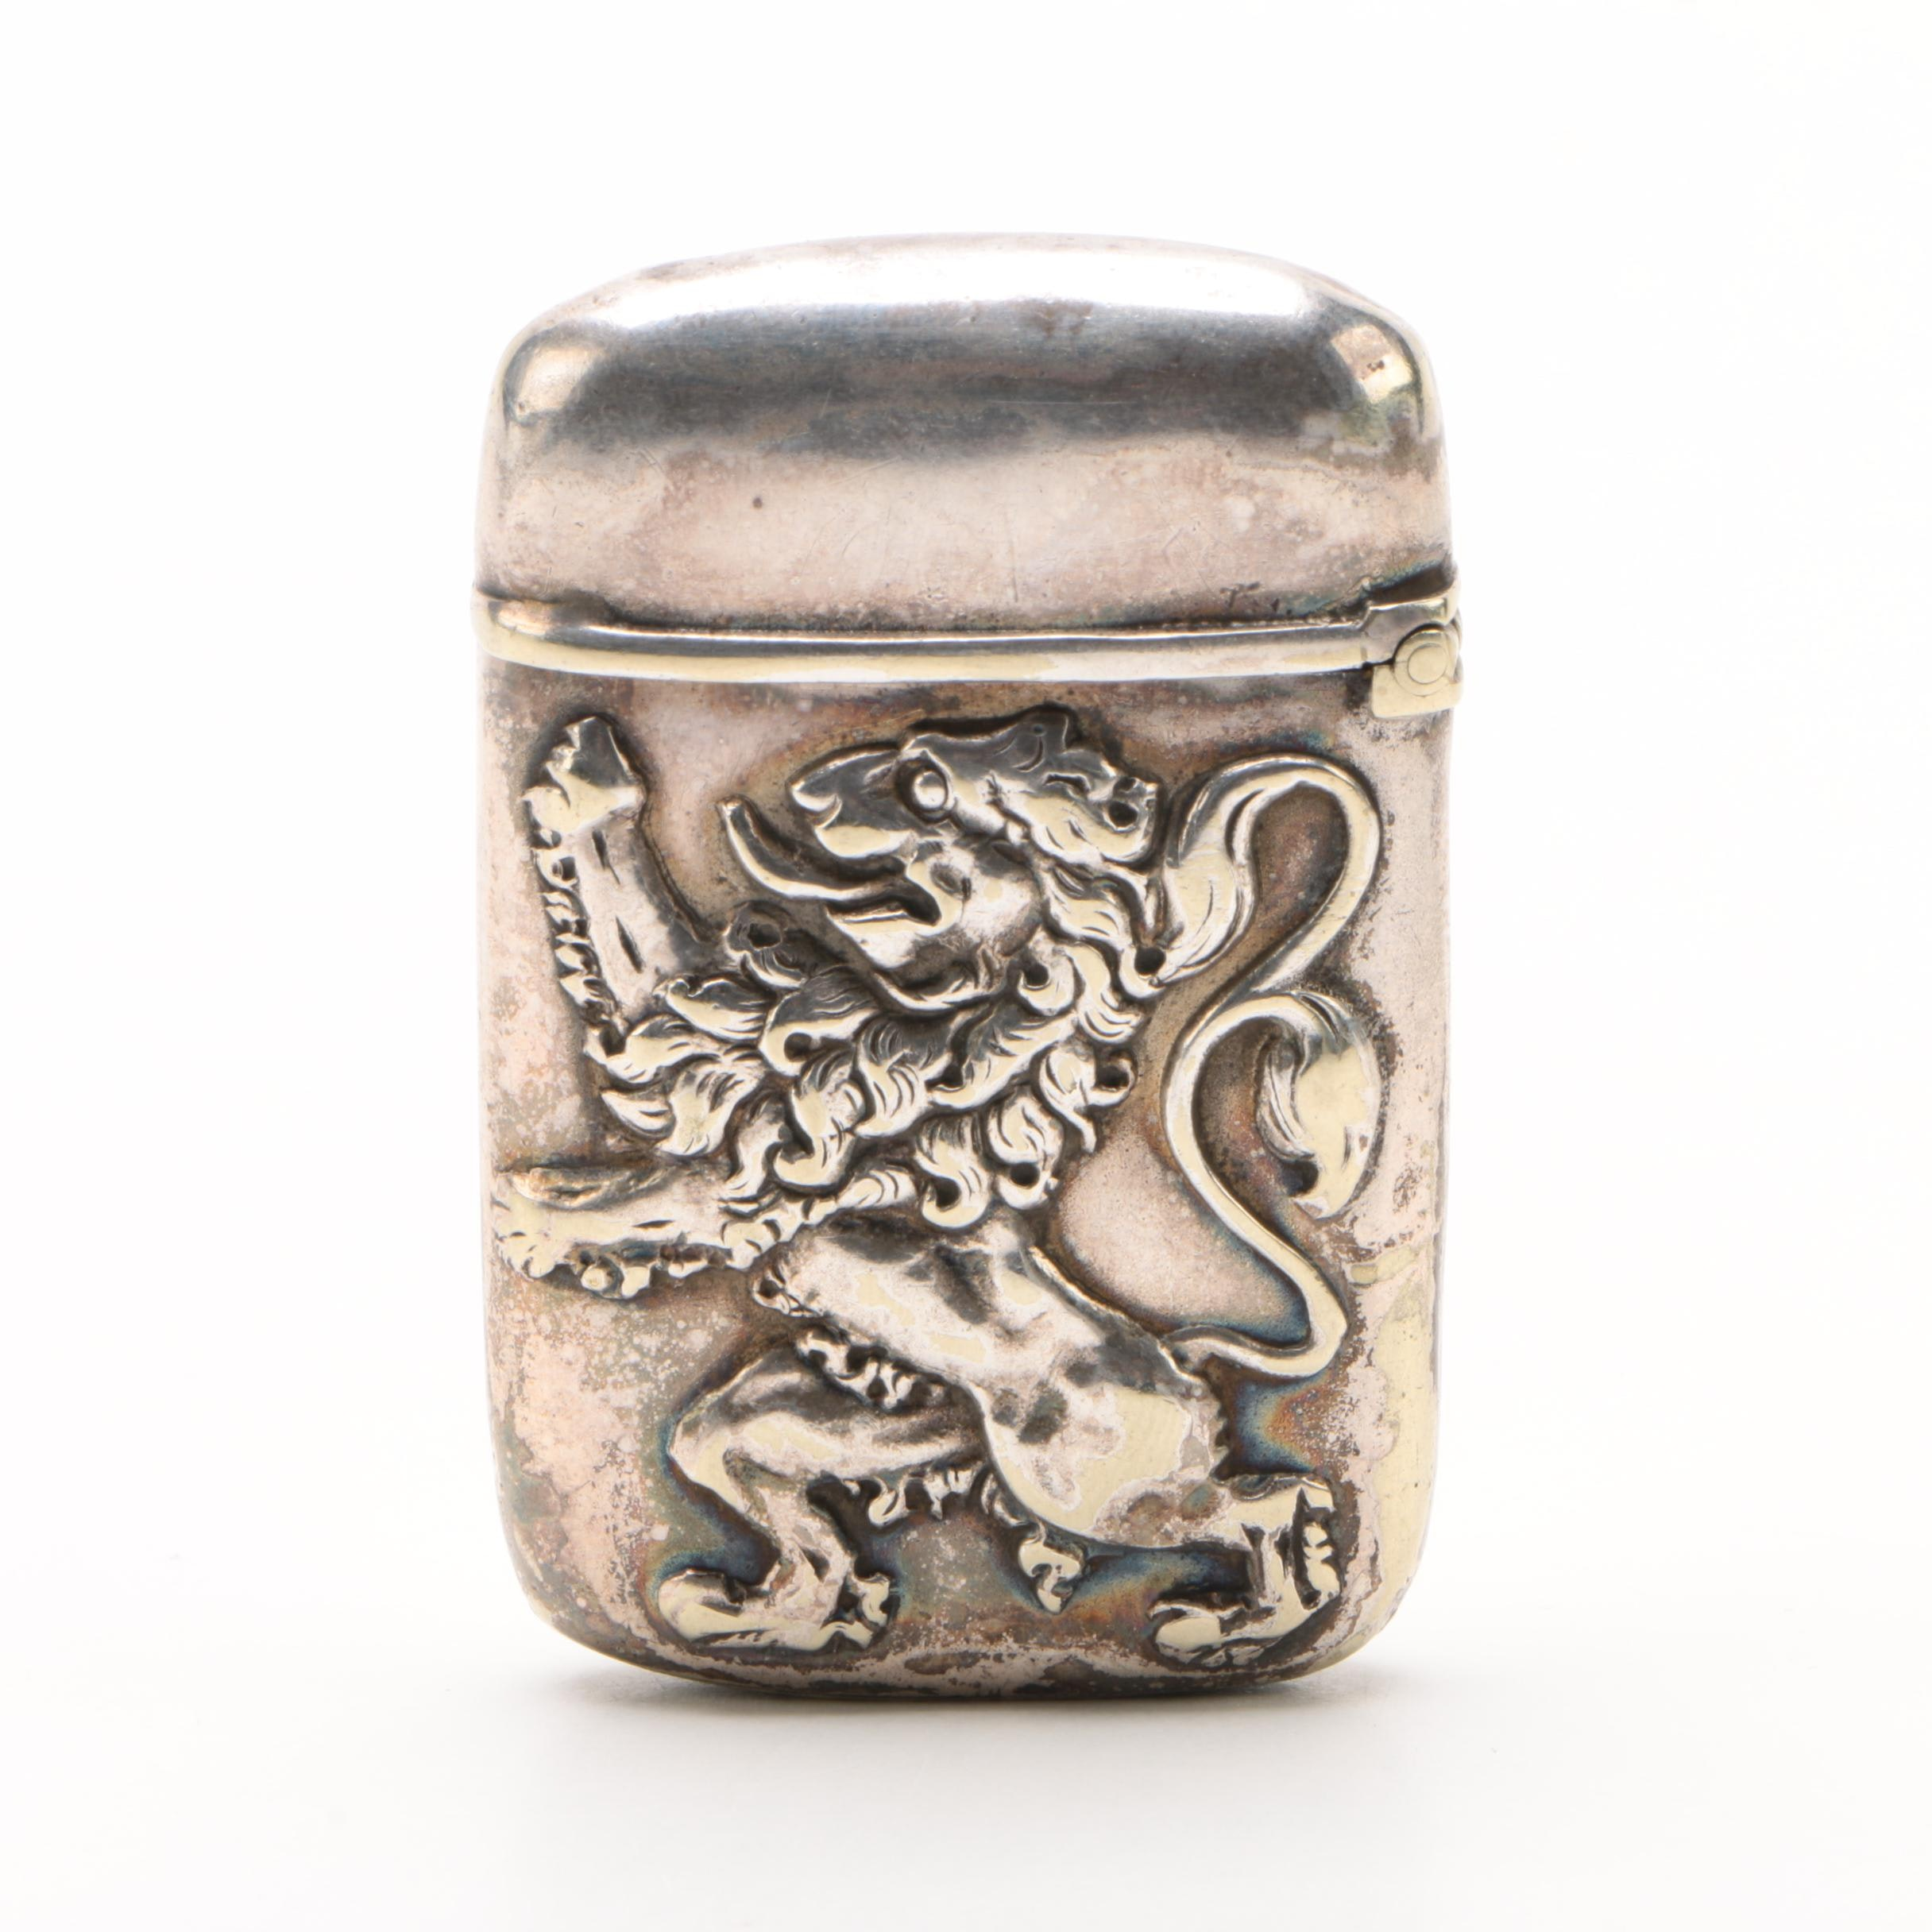 Silver Plate Vesta with Heraldic Rampant Lion Emblem, Early 20th Century